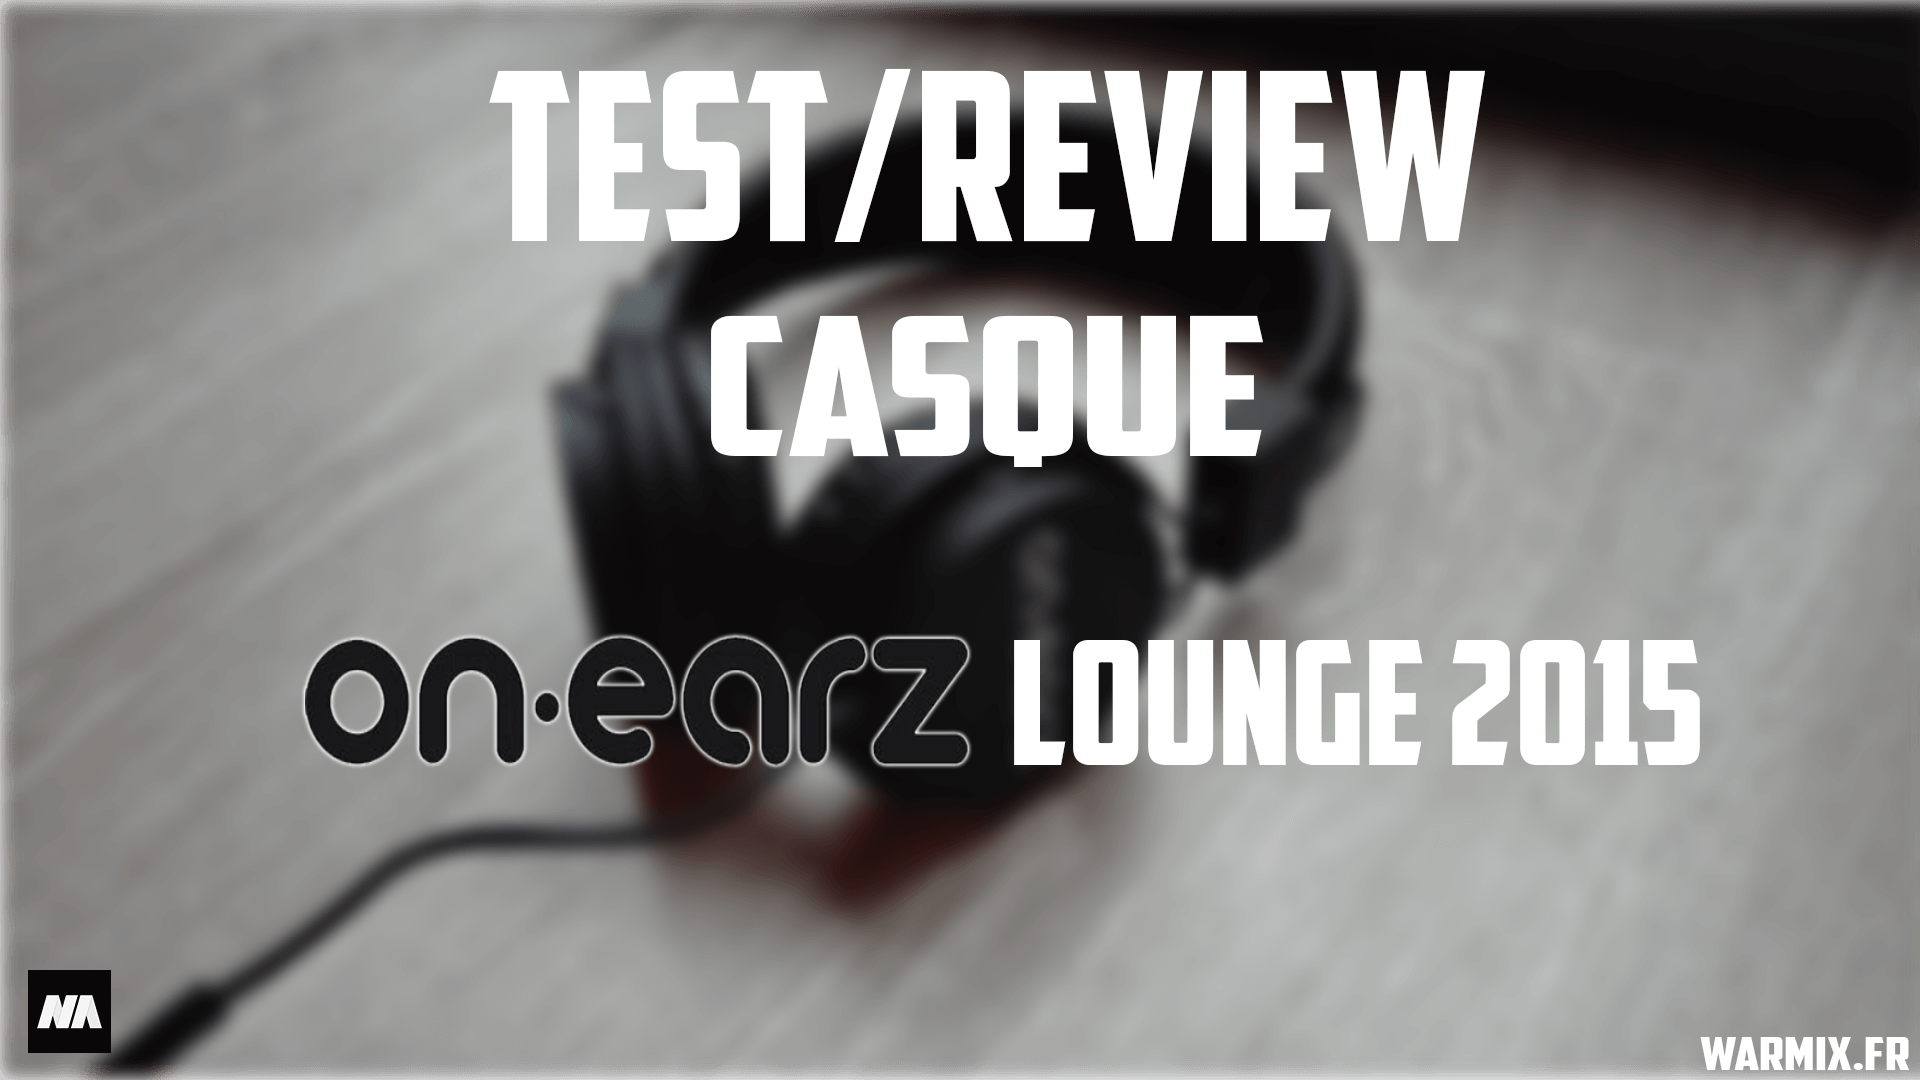 On-earz Lounge 2015 – Un bon casque à 25€ ? Test rapide